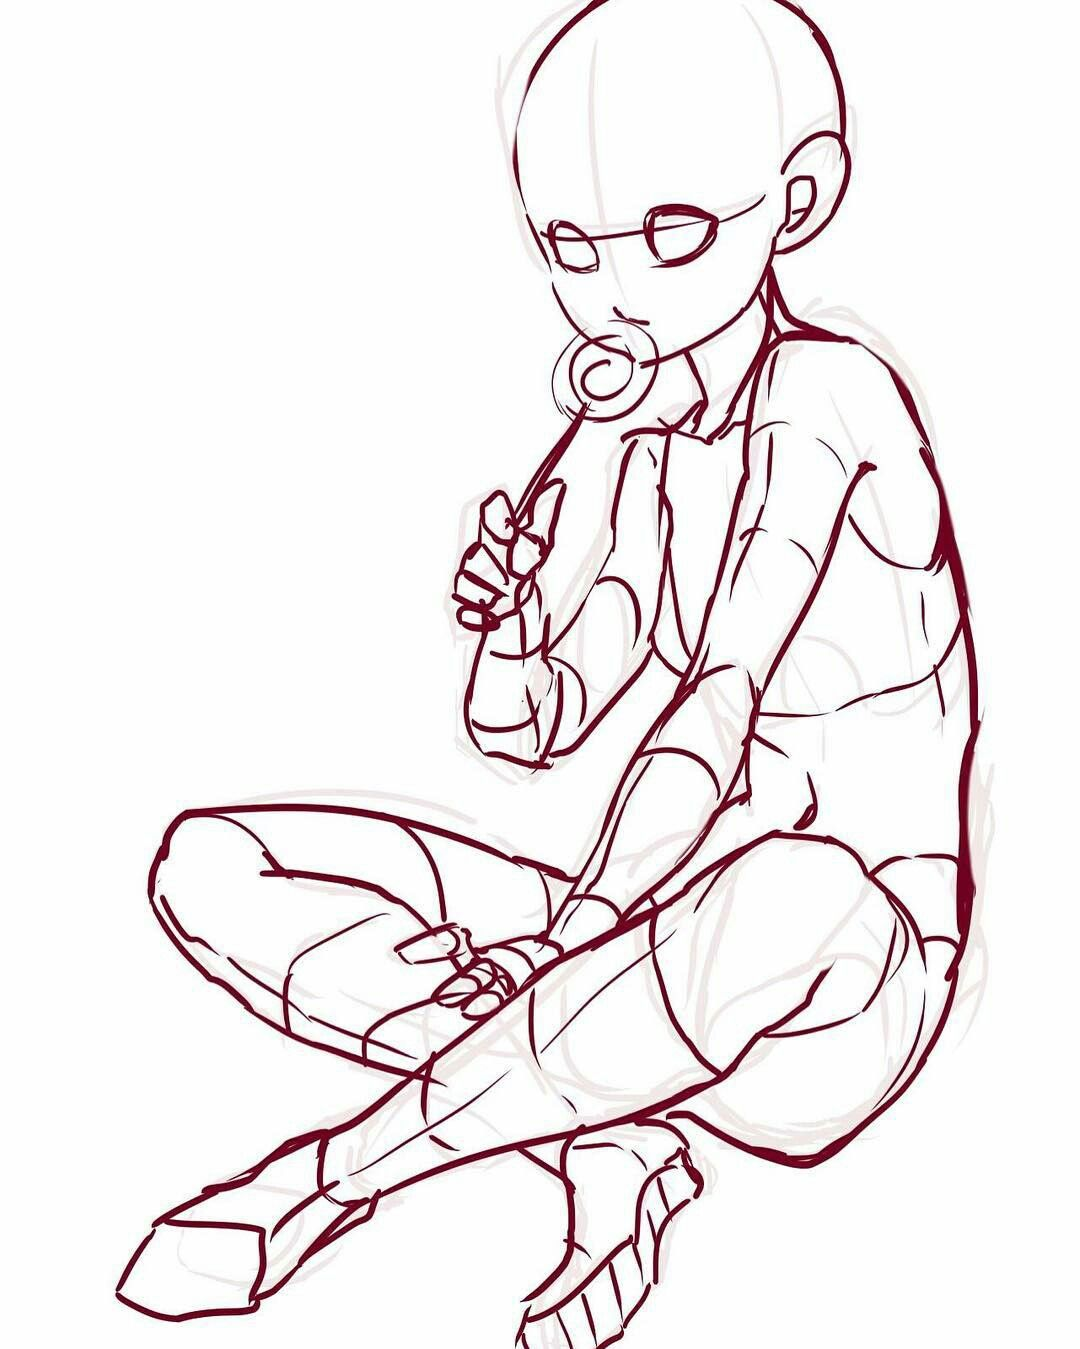 Lollipop lollipop oh lolly lolly lolly drawing poses sketch poses